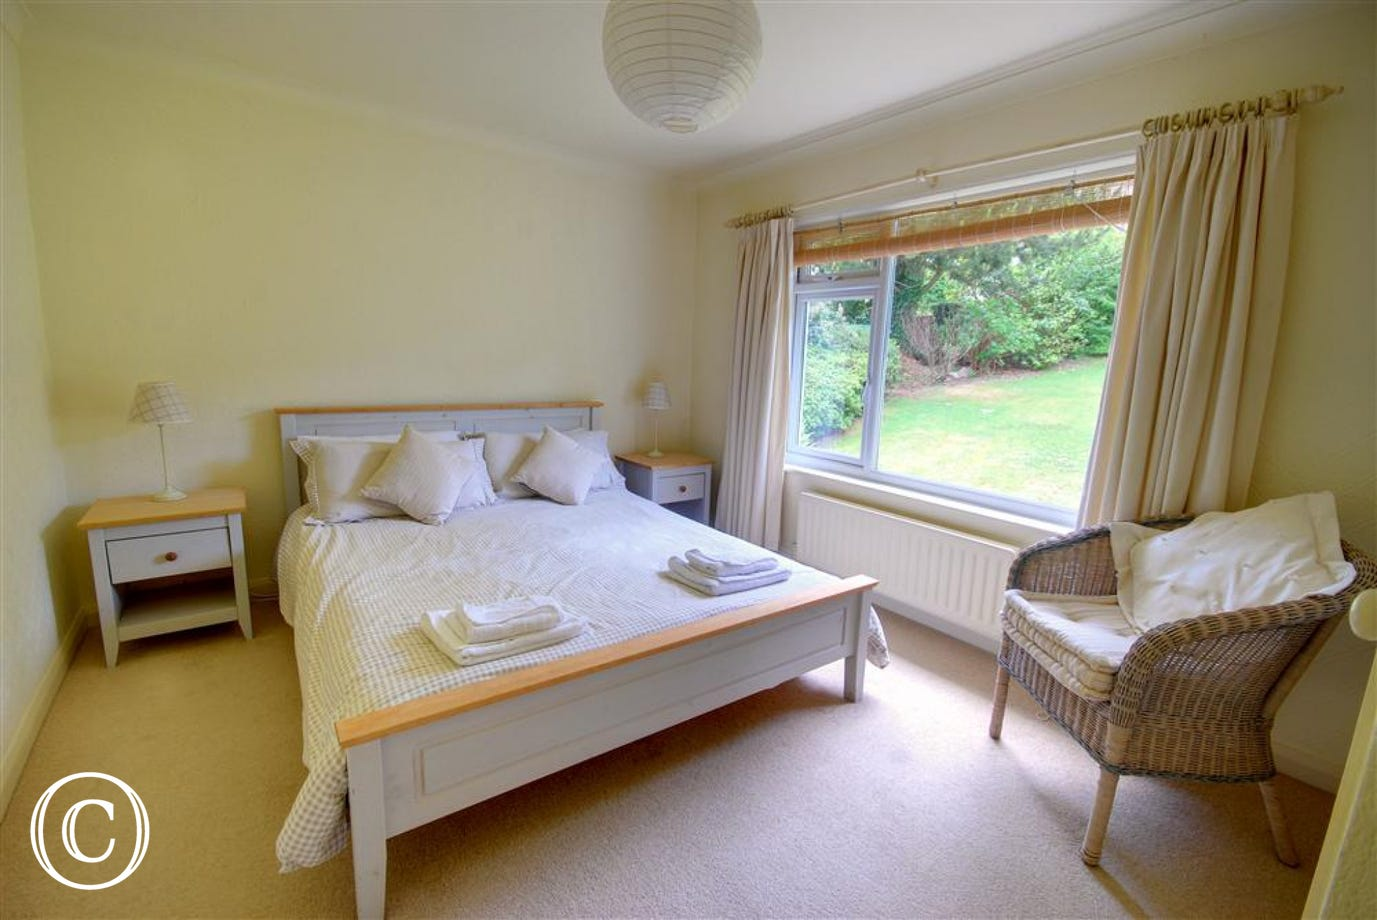 Simply decorated double bedroom with a large picture window and views over the garden